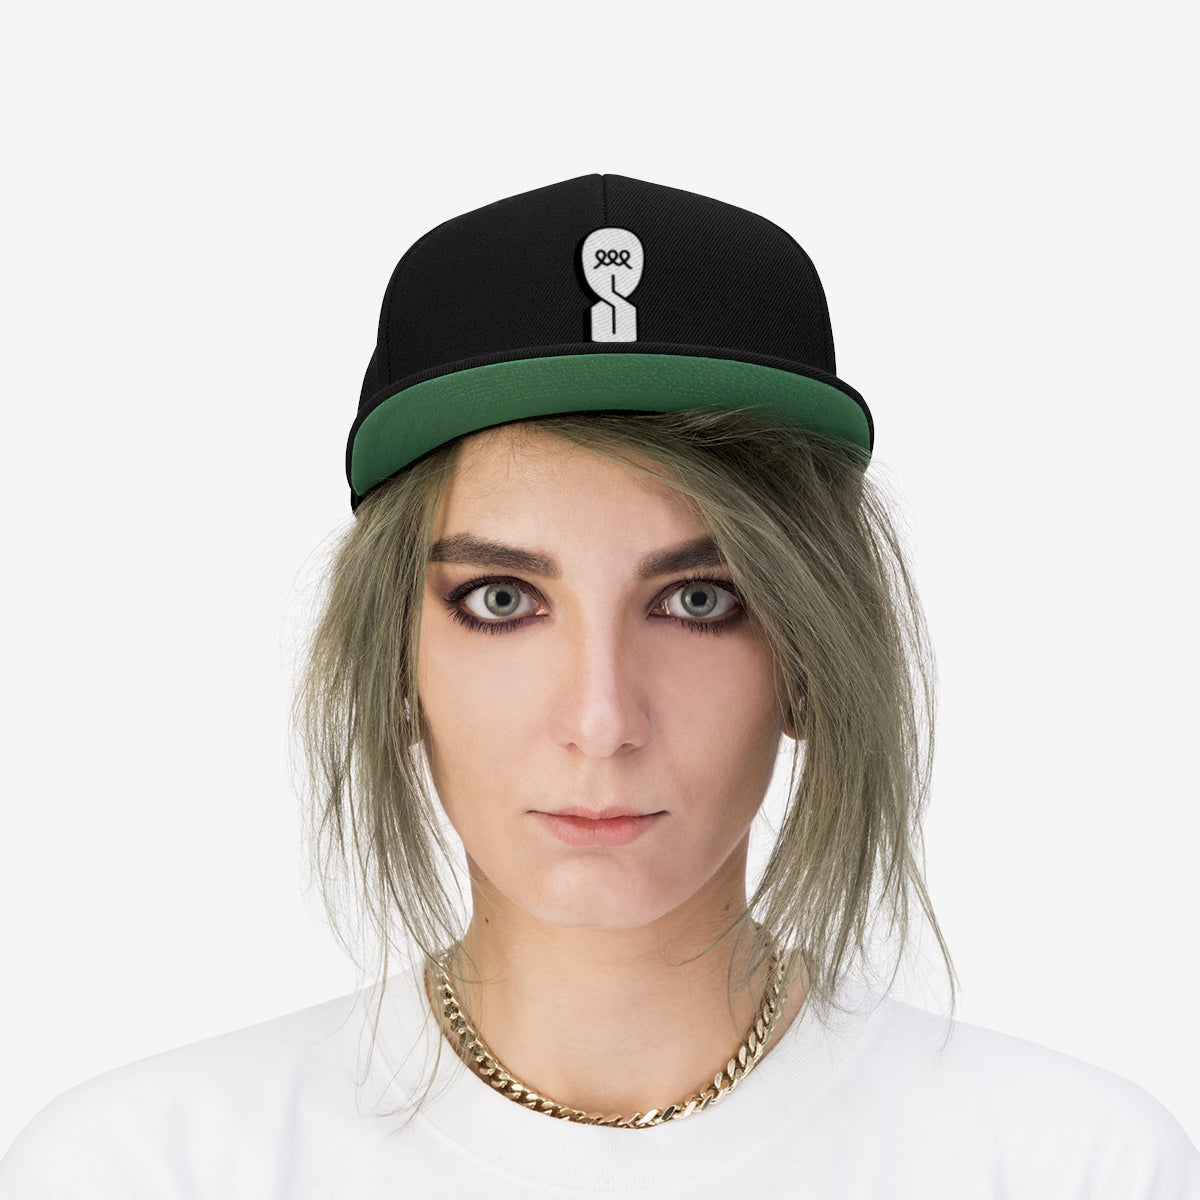 FLAT ESS - EDI$ON - Unisex Flat Bill Hat